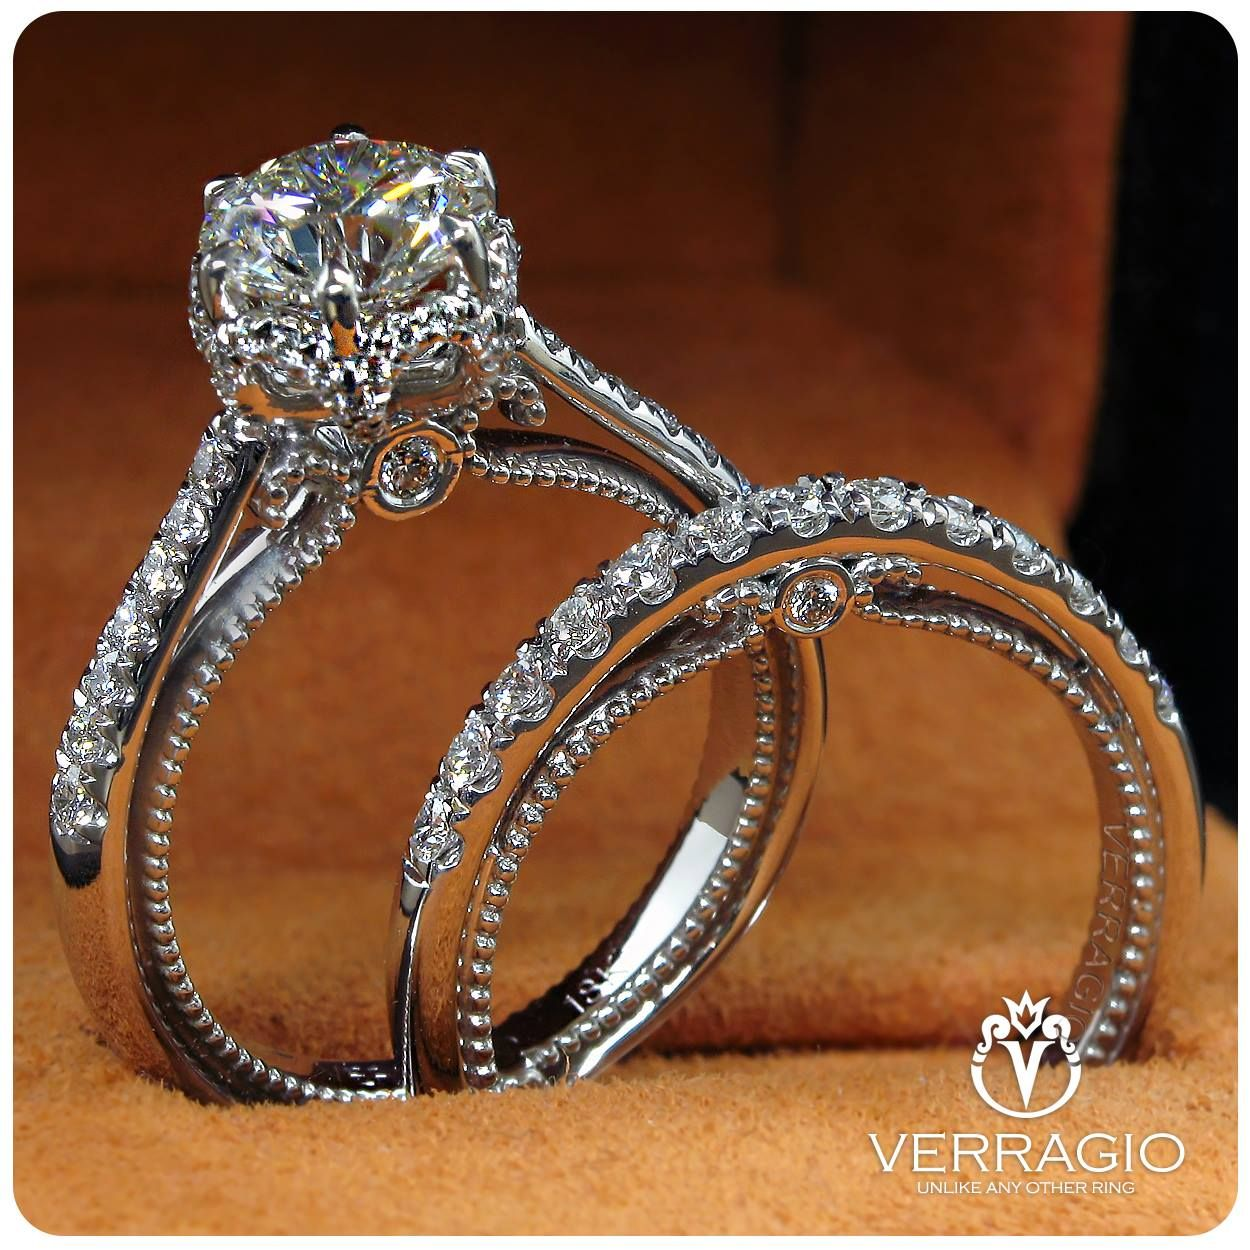 Verragio Verragio Couture 0429rd 14k White Gold Diamond Engagement Ring By Verragio Wedding Rings Vintage Ruby Wedding Rings Diamond Wedding Bands